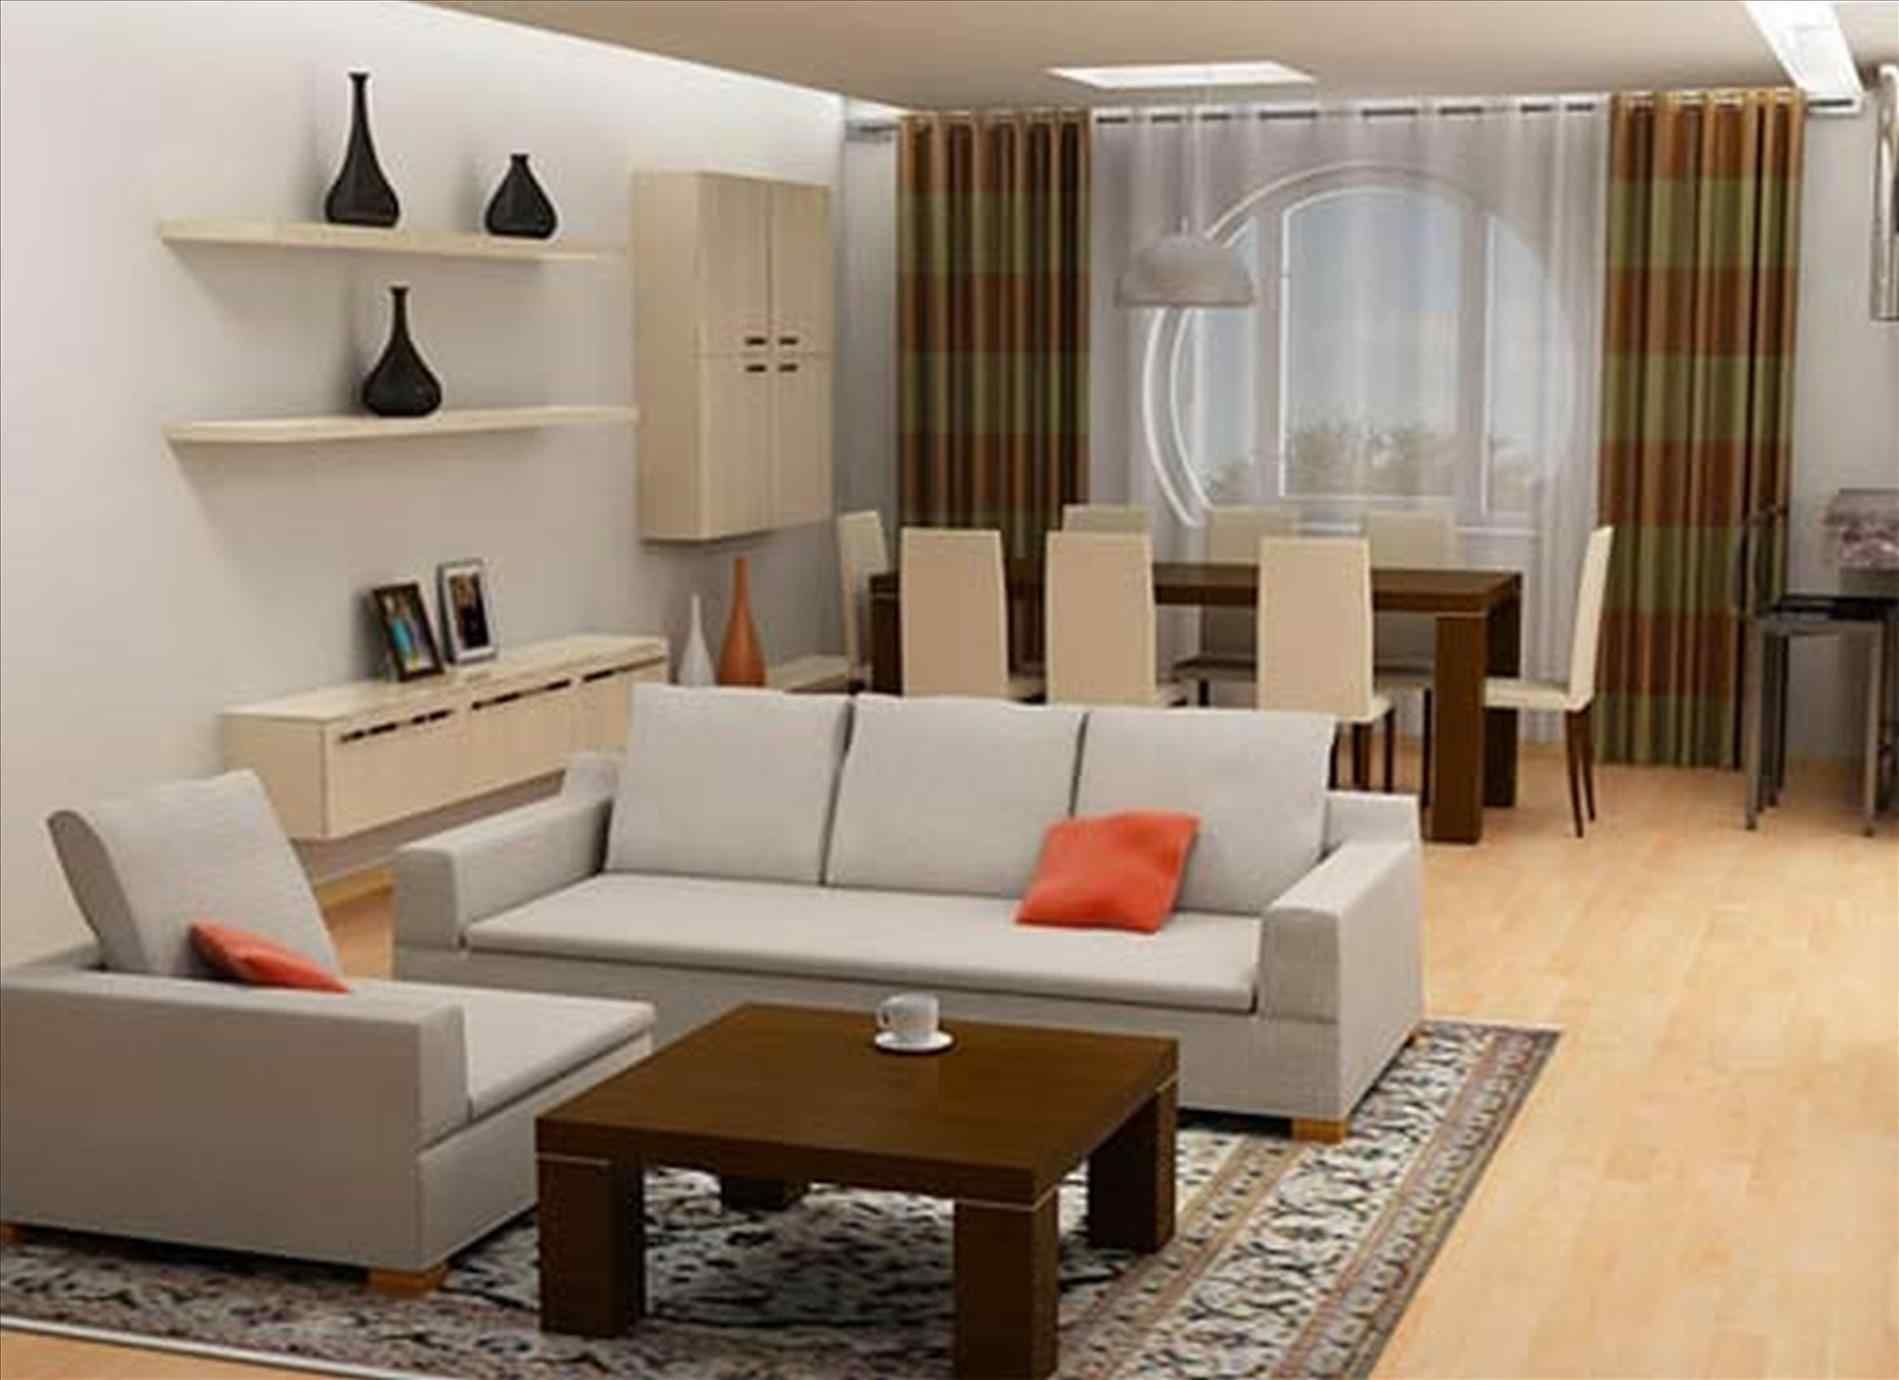 Modern Furniture Ideas For A Small Living Room Brown Leather Sofa